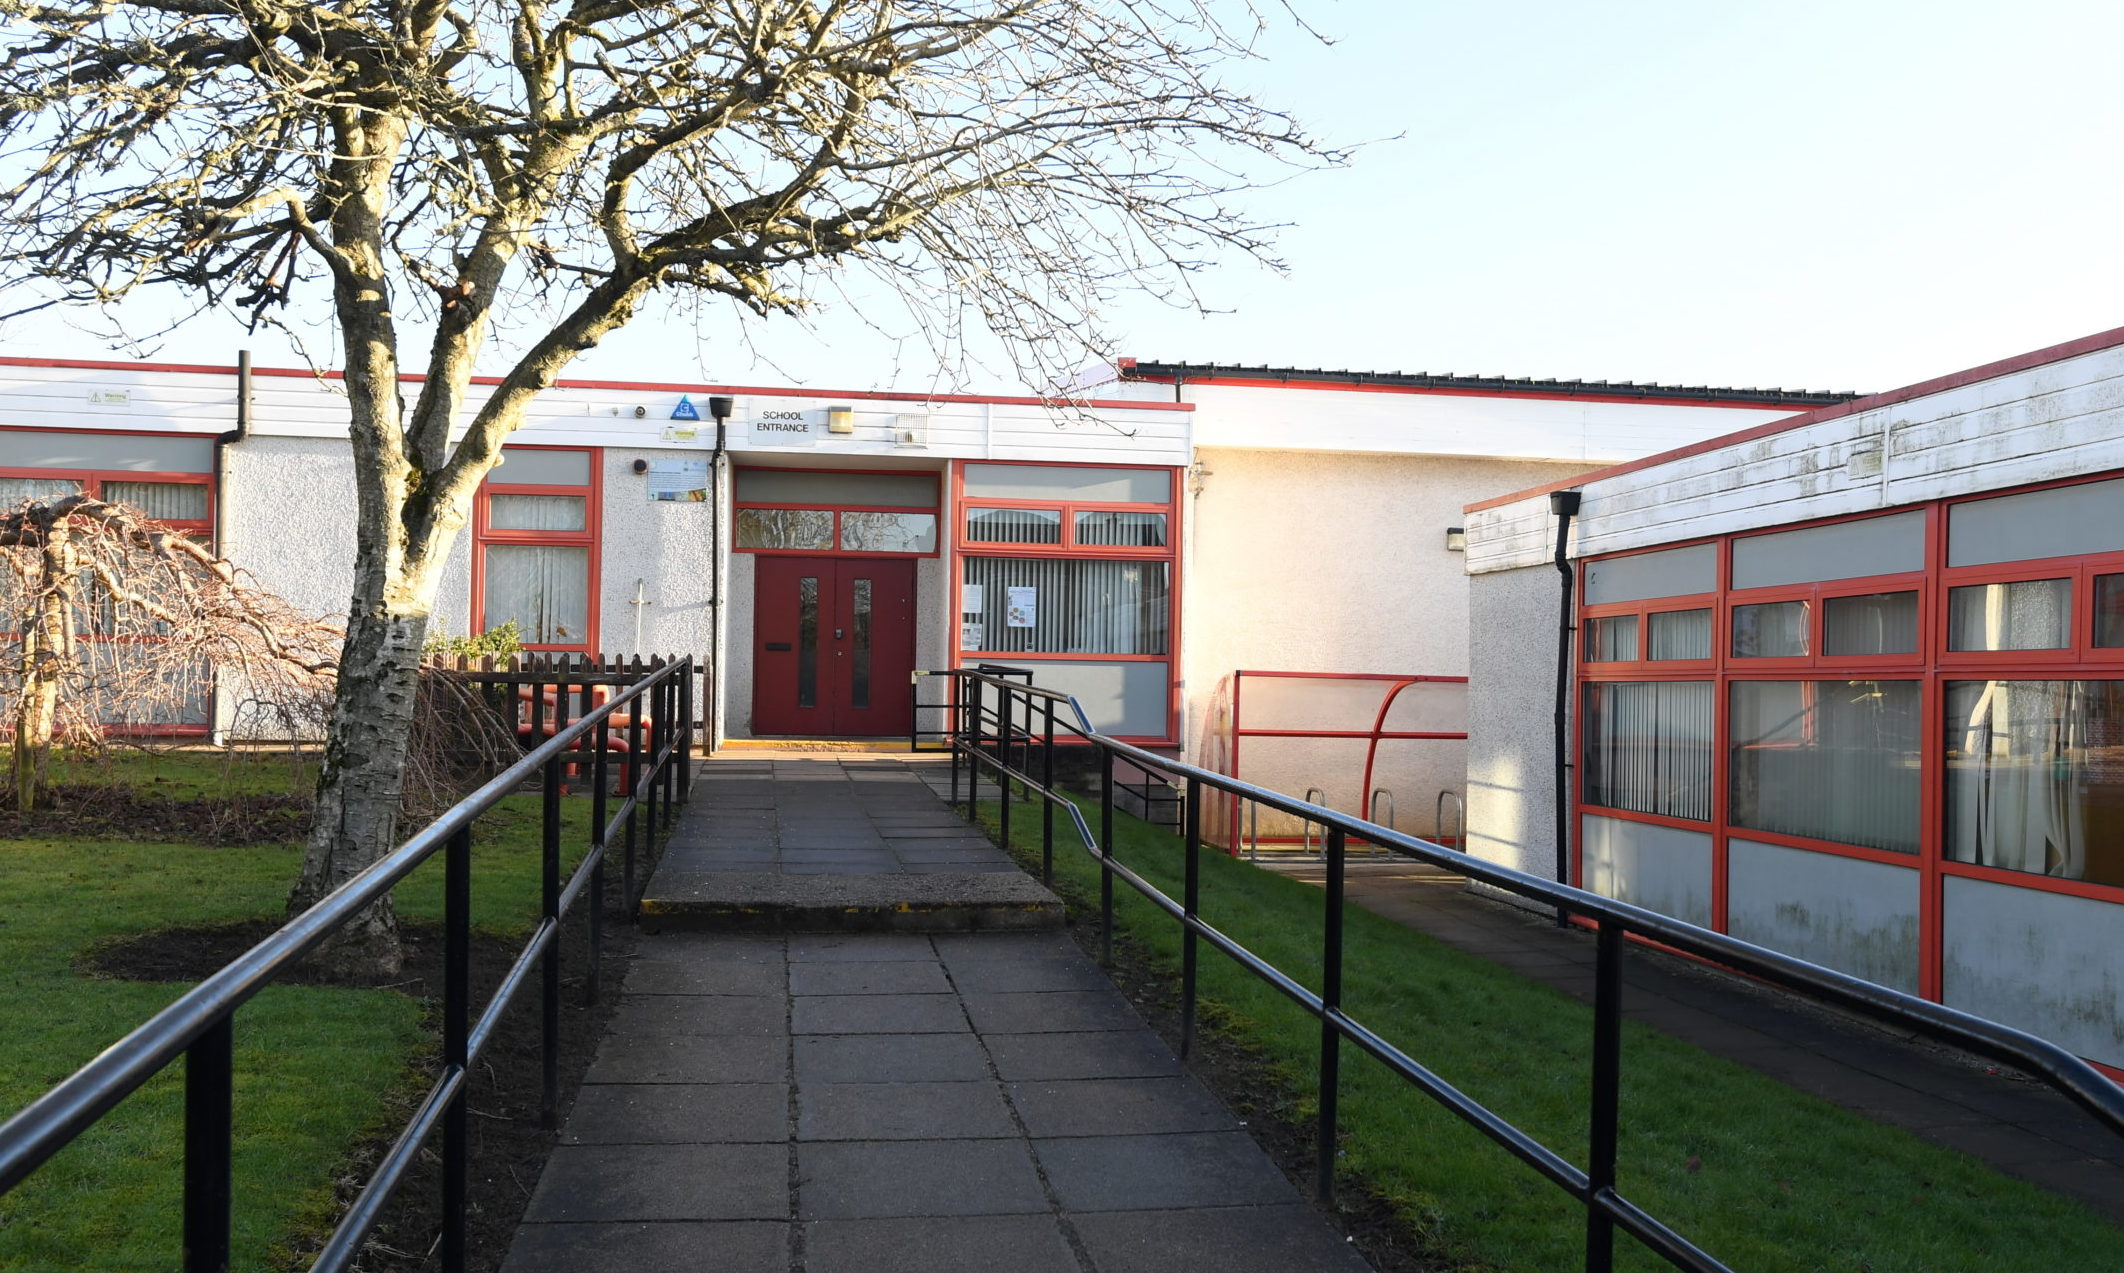 Milltimber Primary School. Picture by Chris Sumner